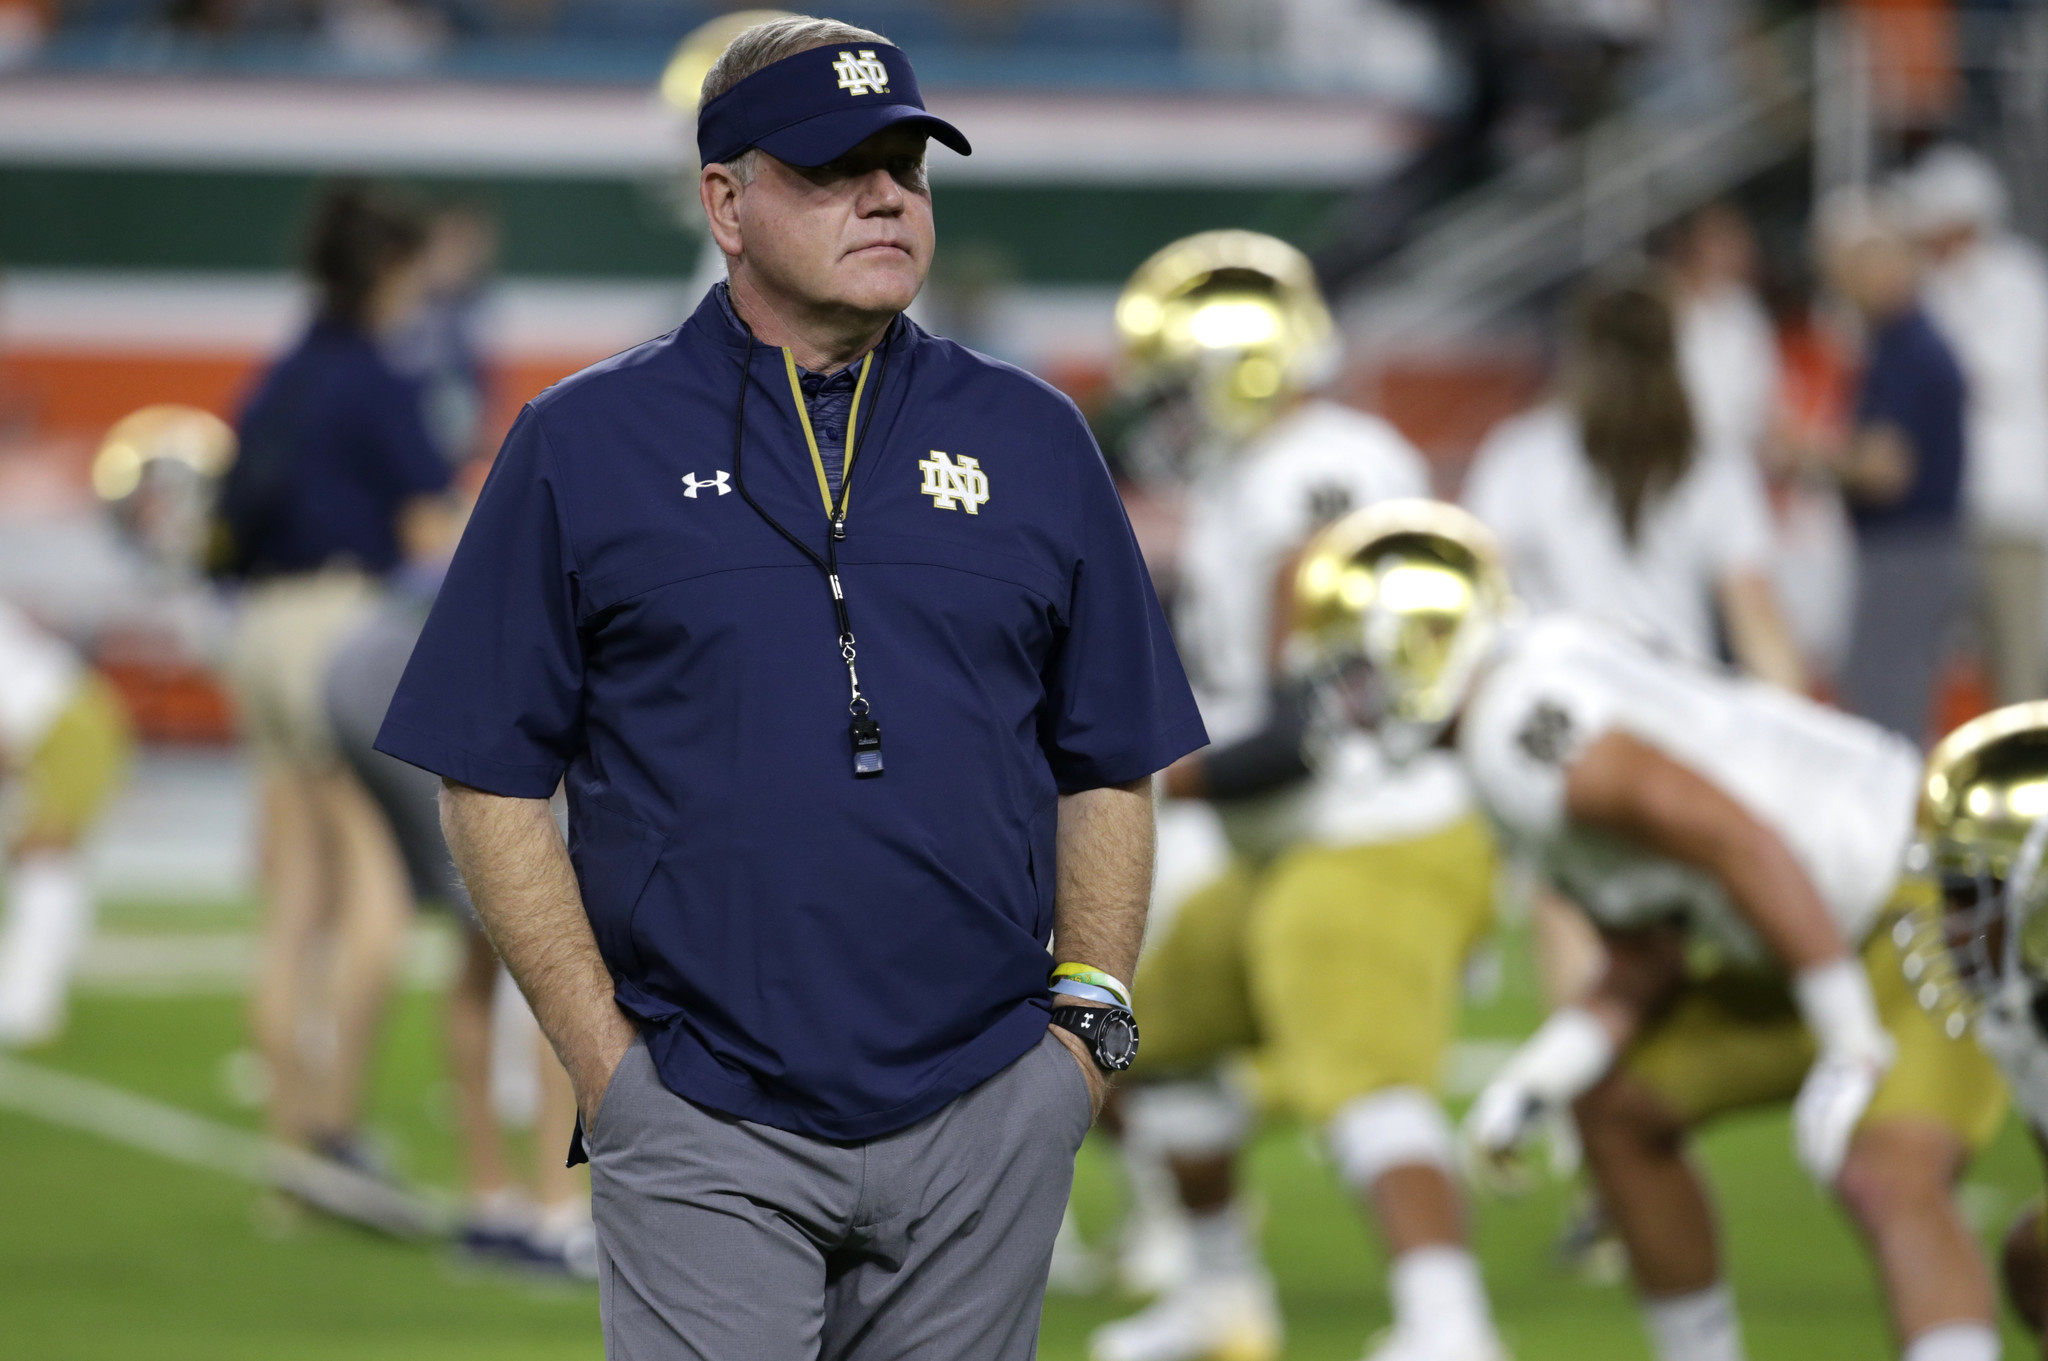 Ct-notre-dame-stanford-preview-spt-1125-20171124